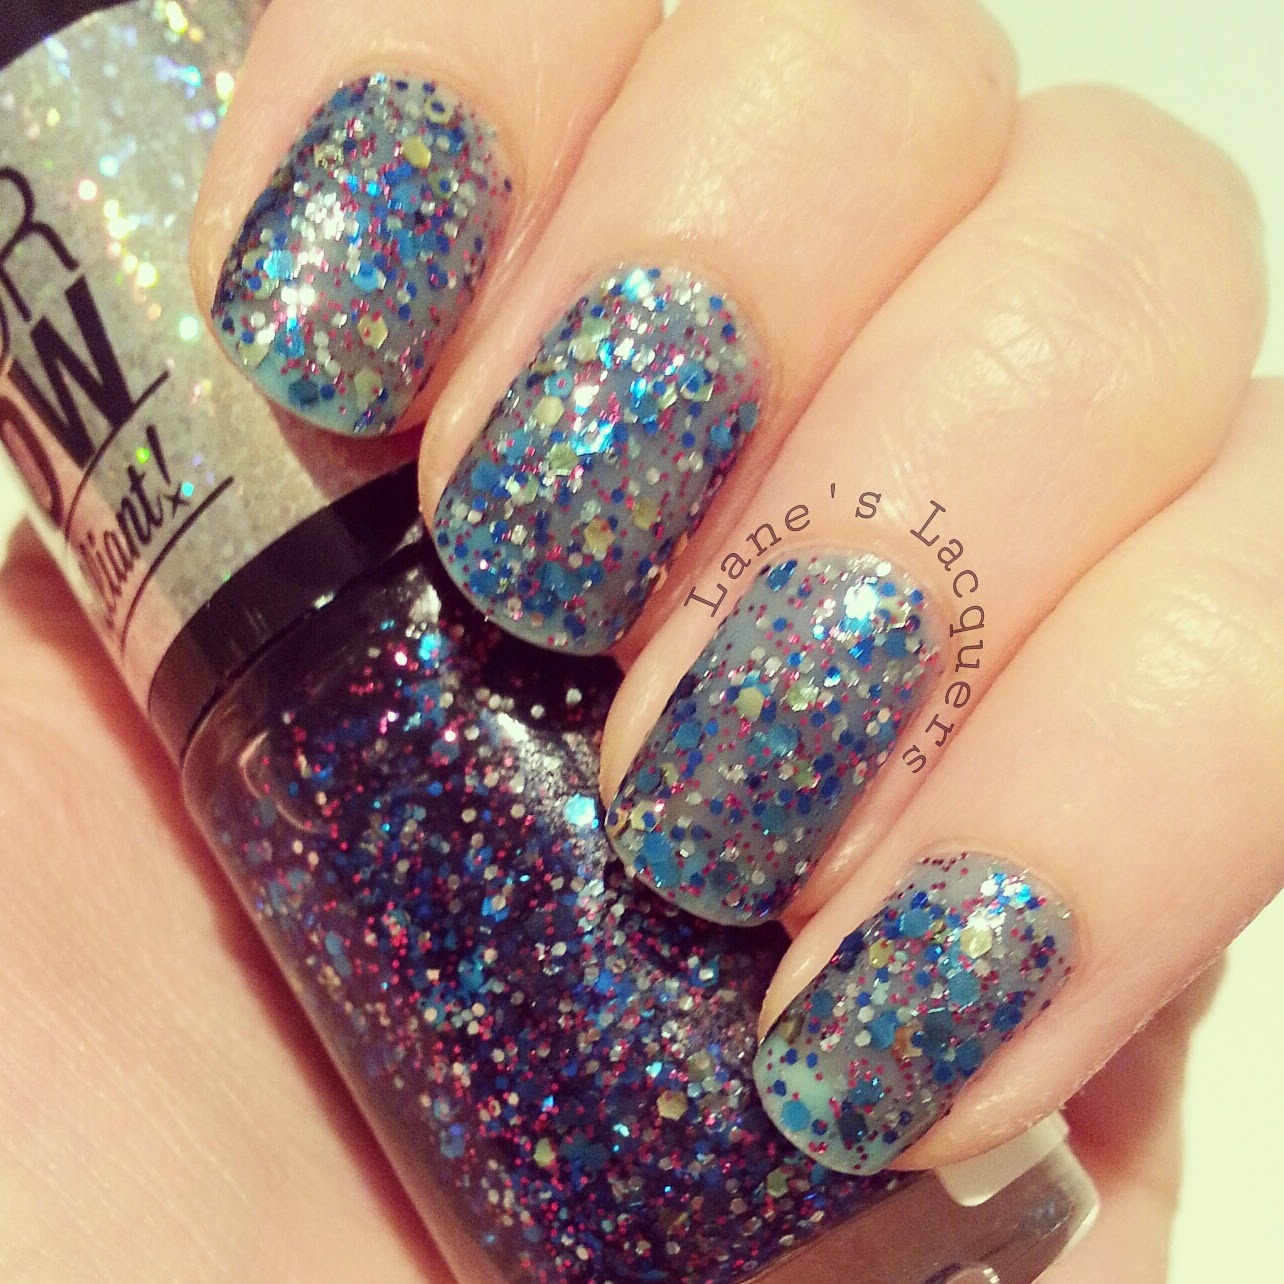 maybelline-colorshow-be-brilliant-skyline-blue-swatch-nails (2)